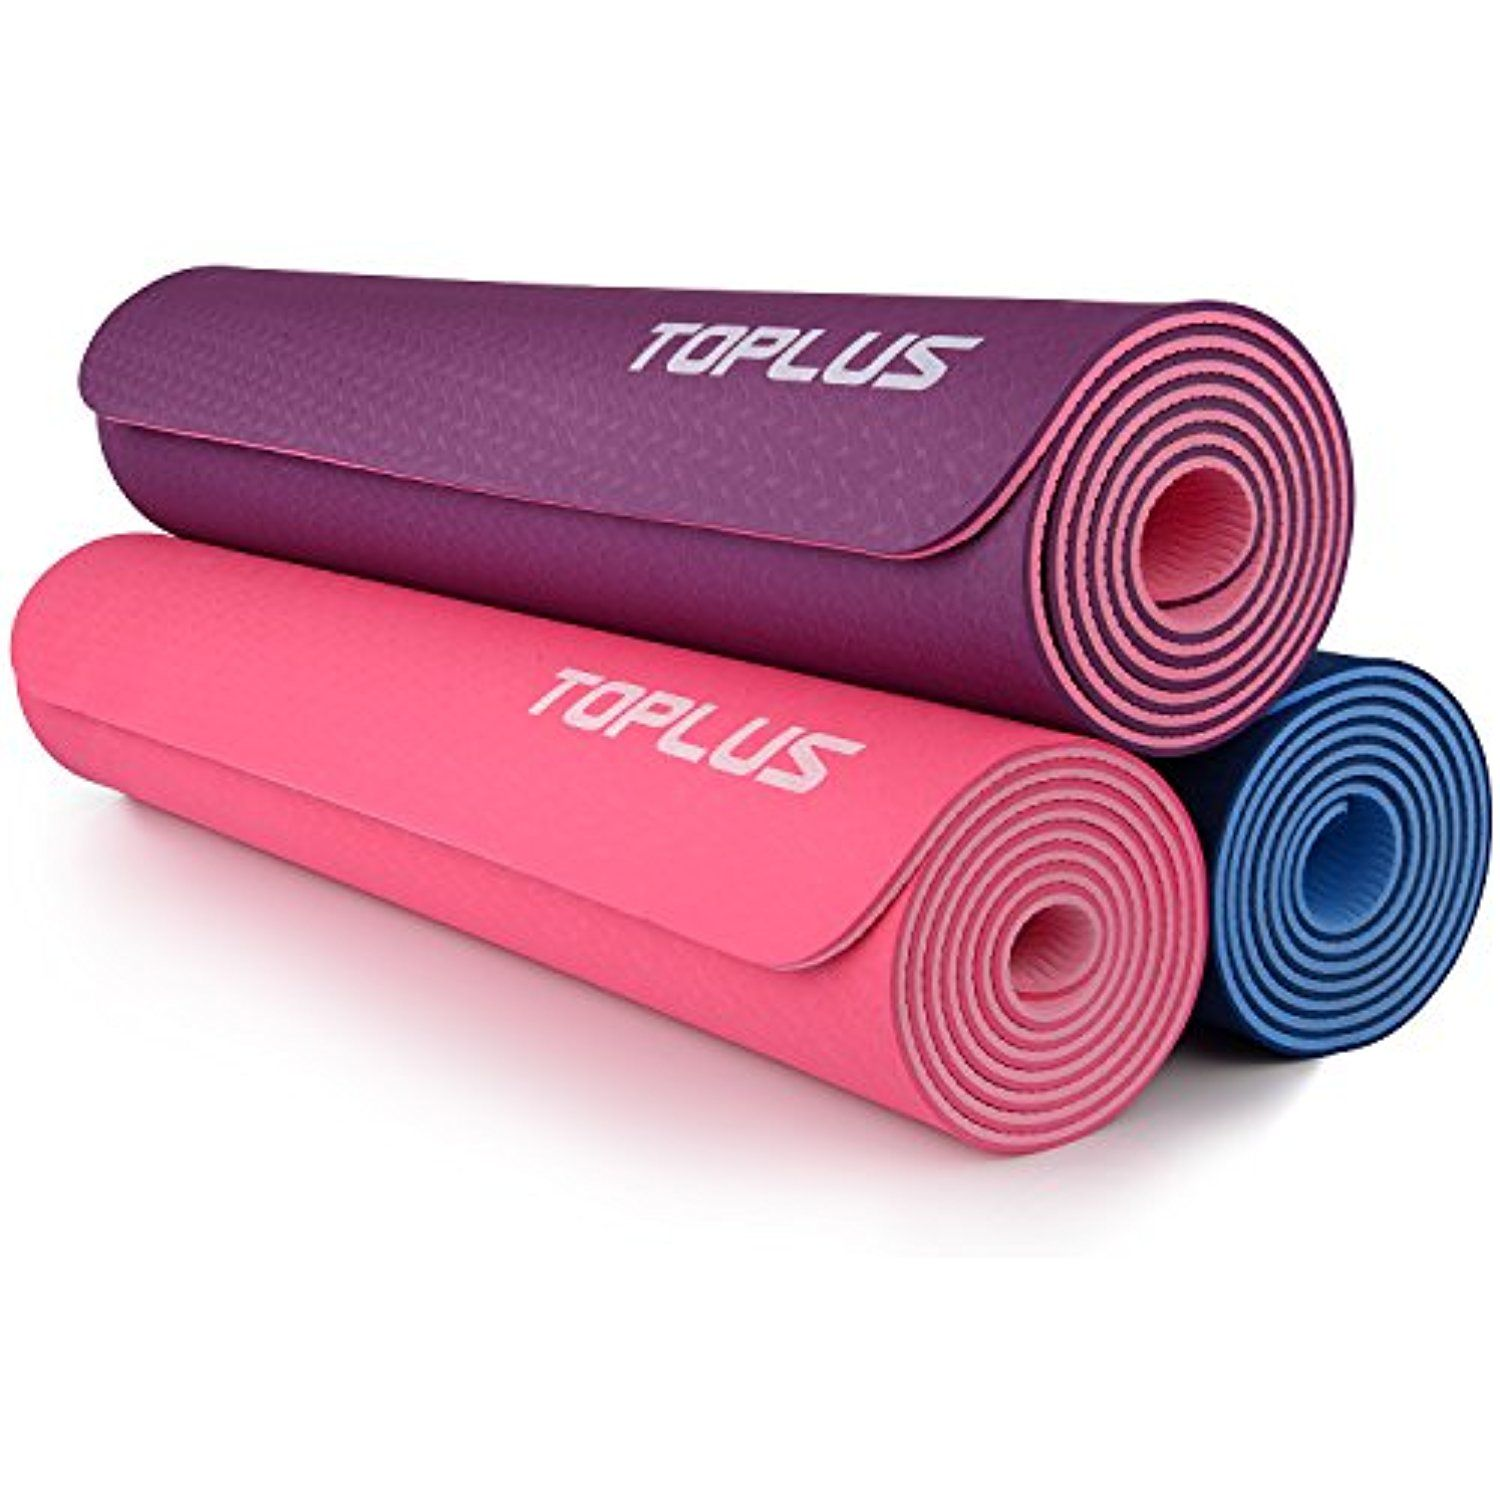 Toplus 1 4 Inch Premium Tpe Yoga Mat With Carrying Strap Non Slip Eco Friendly Durable Fitness Exercise Mat 6mm Thick For M With Images Mat Exercises Exercise Yoga Mat